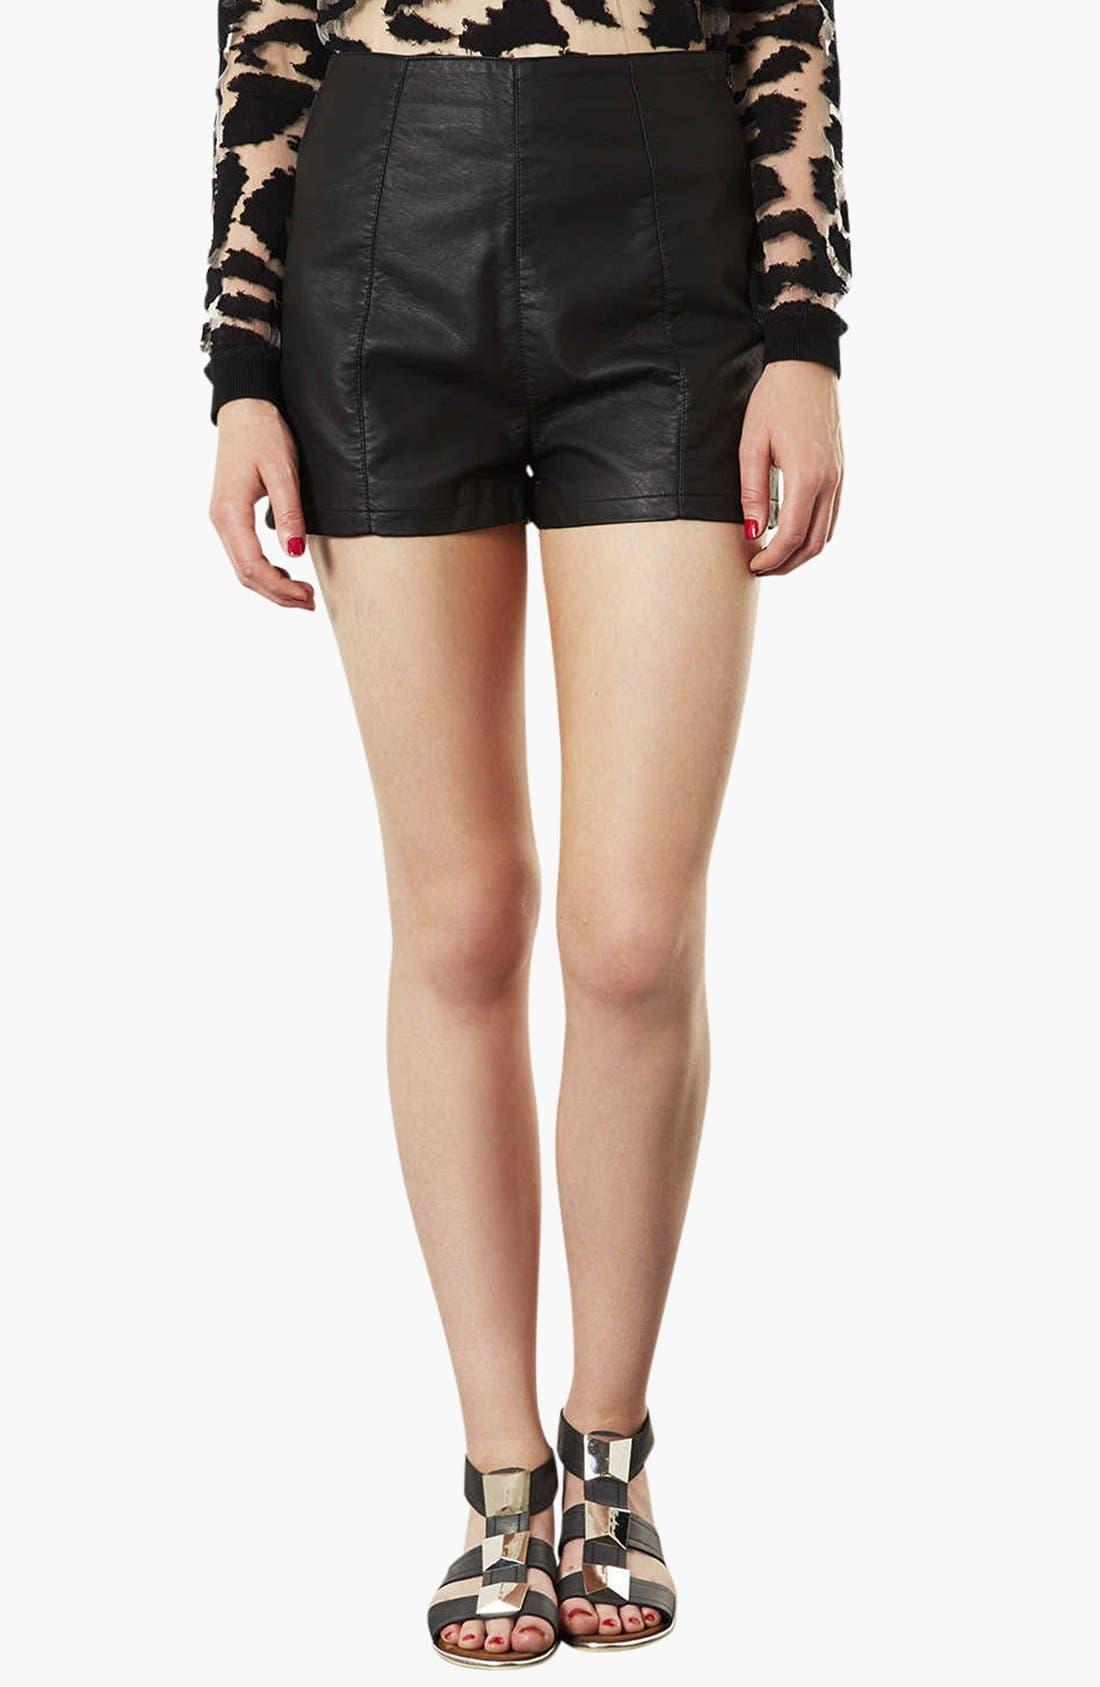 Main Image - Topshop 'Lola' High Waist Faux Leather Shorts